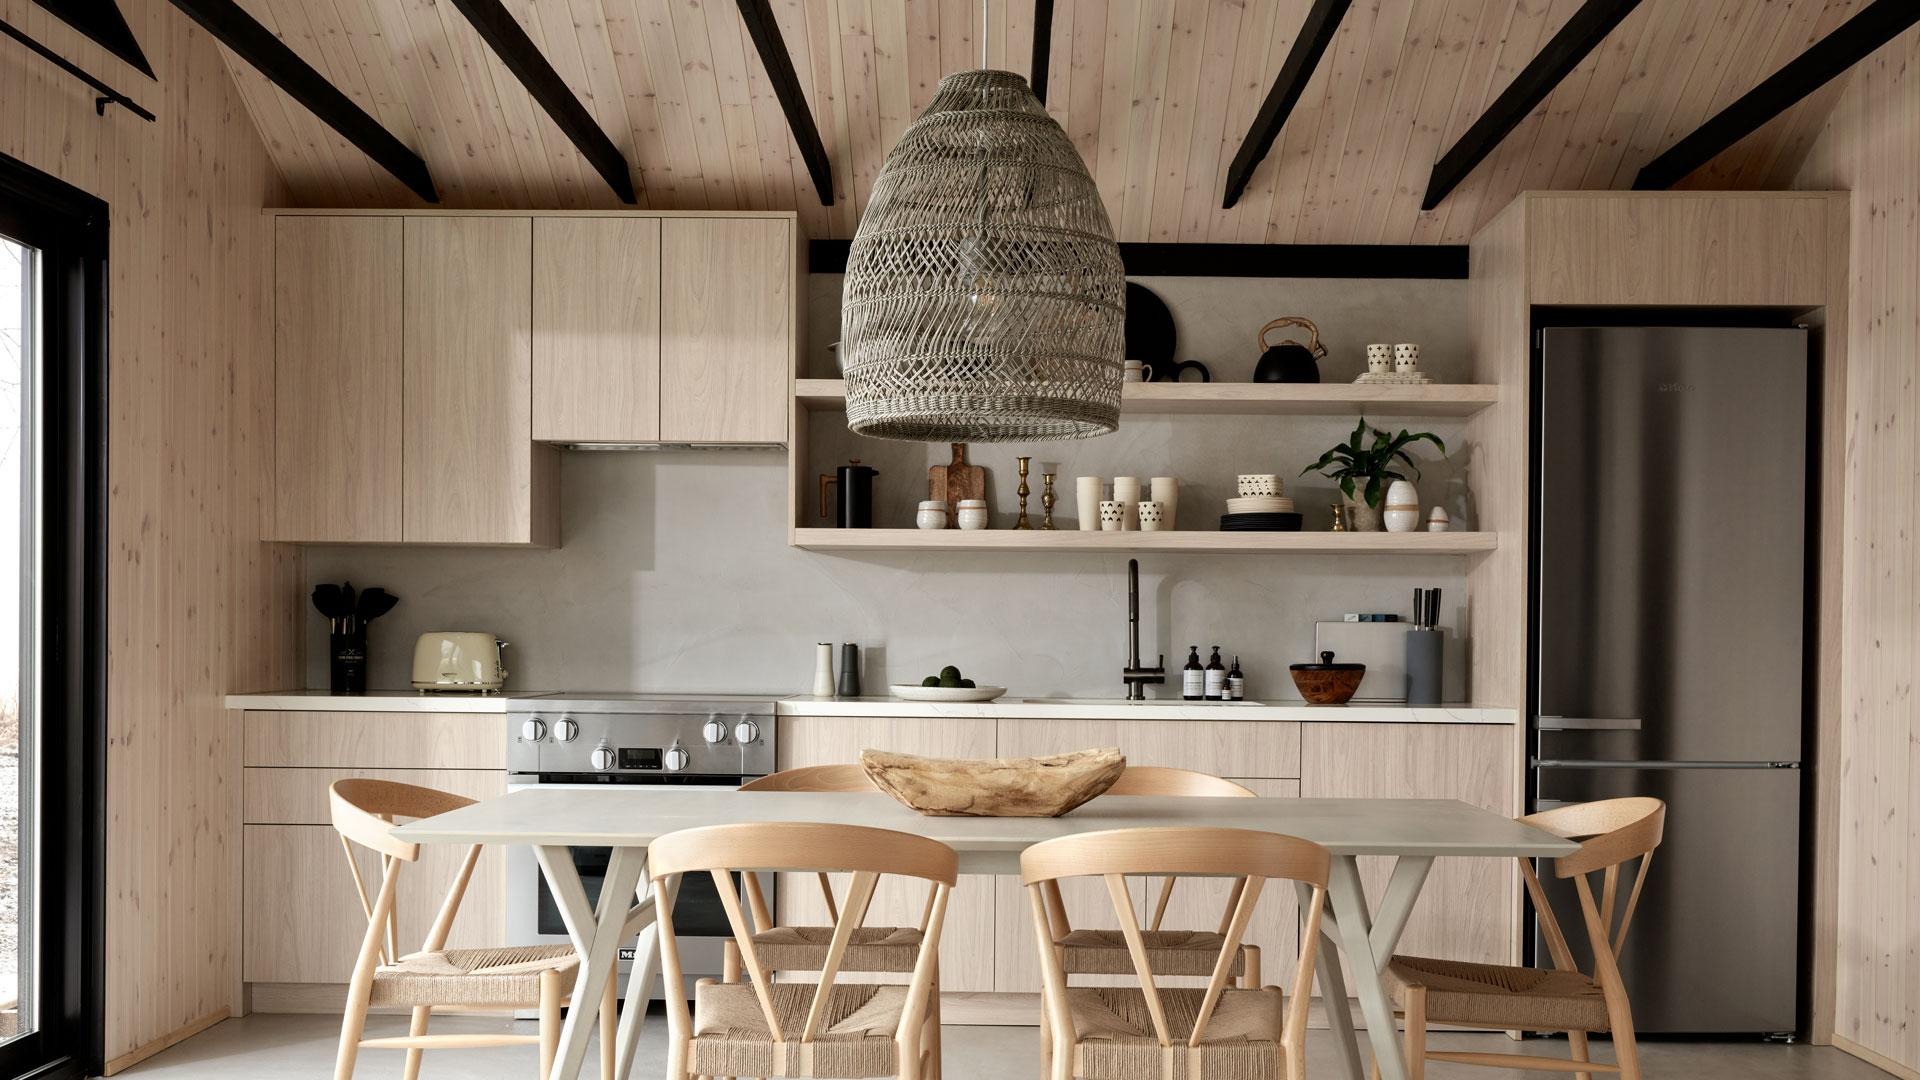 Wander the Resort in Prince Edward County | Inside the spacious kitchen